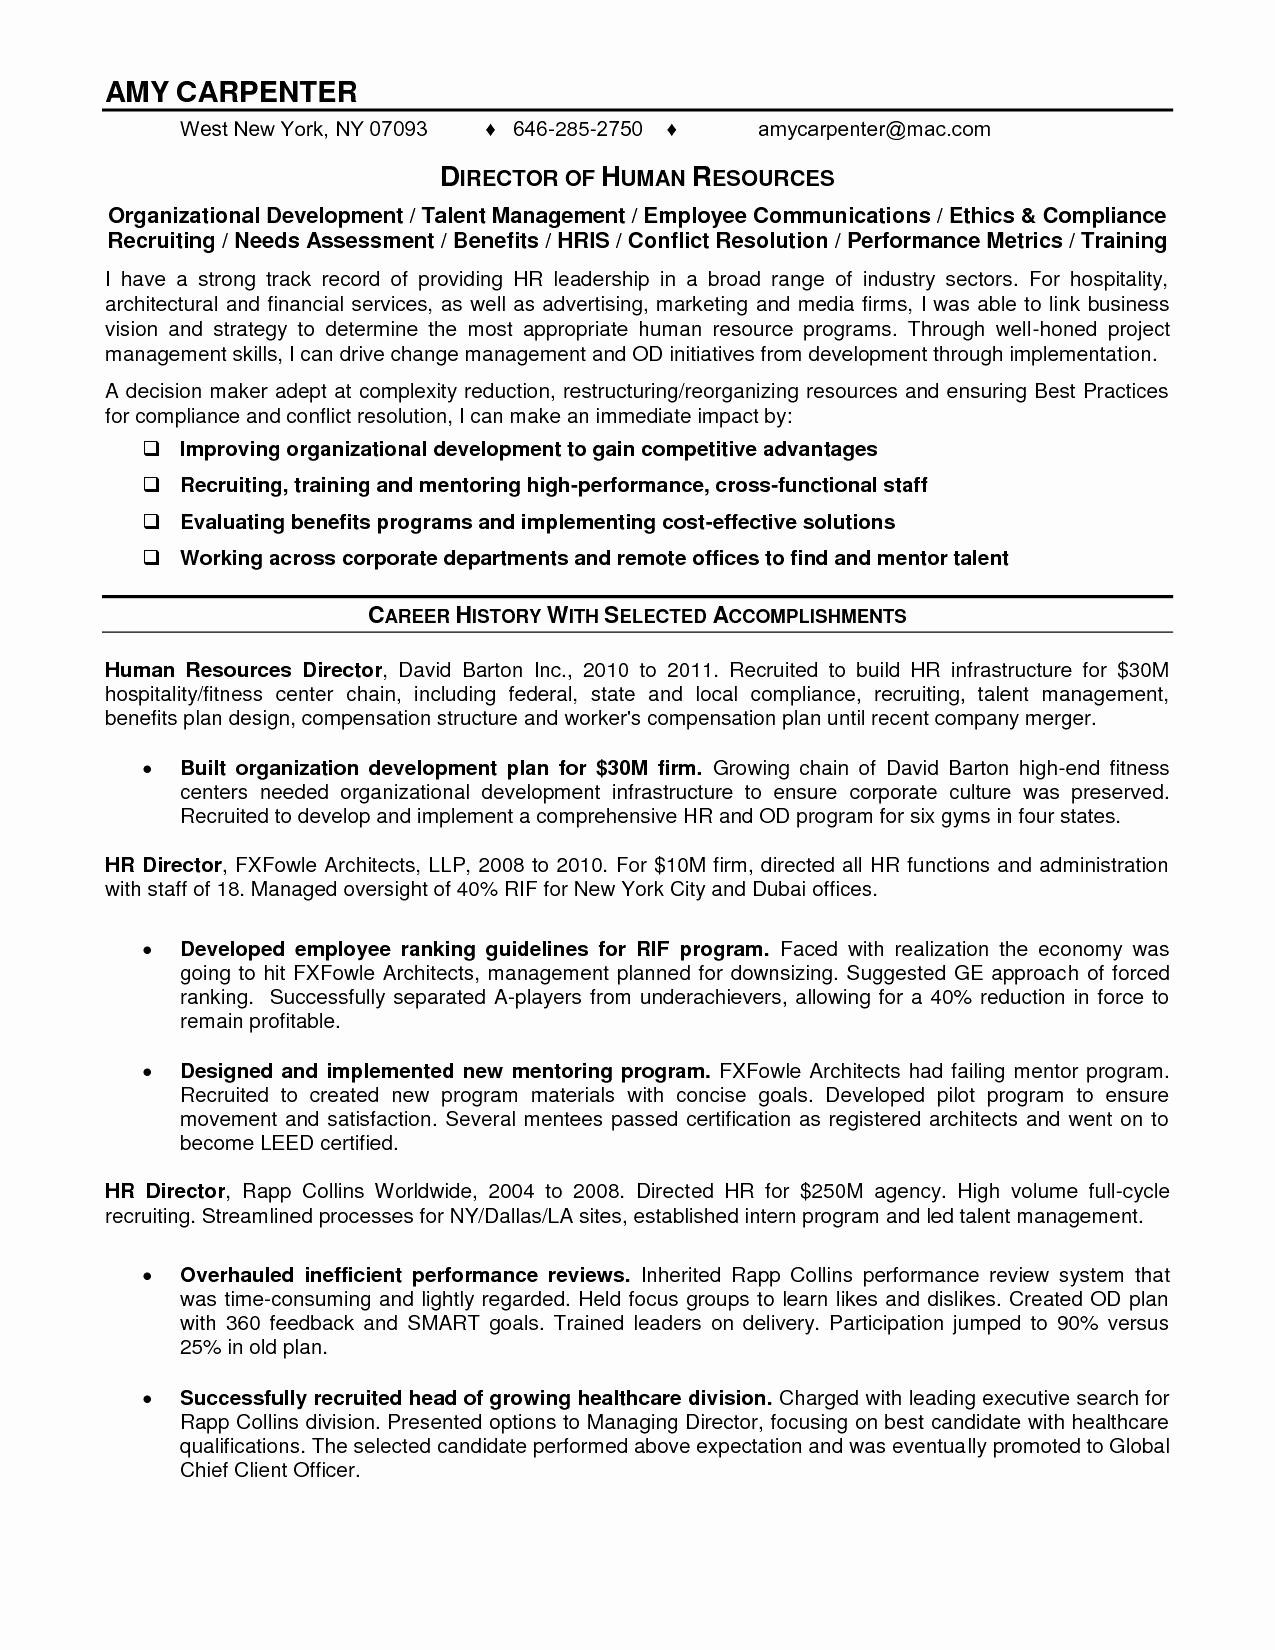 Healthcare Management Resume - Objective for Resume Healthcare Example Fresh Medical Resume Sample